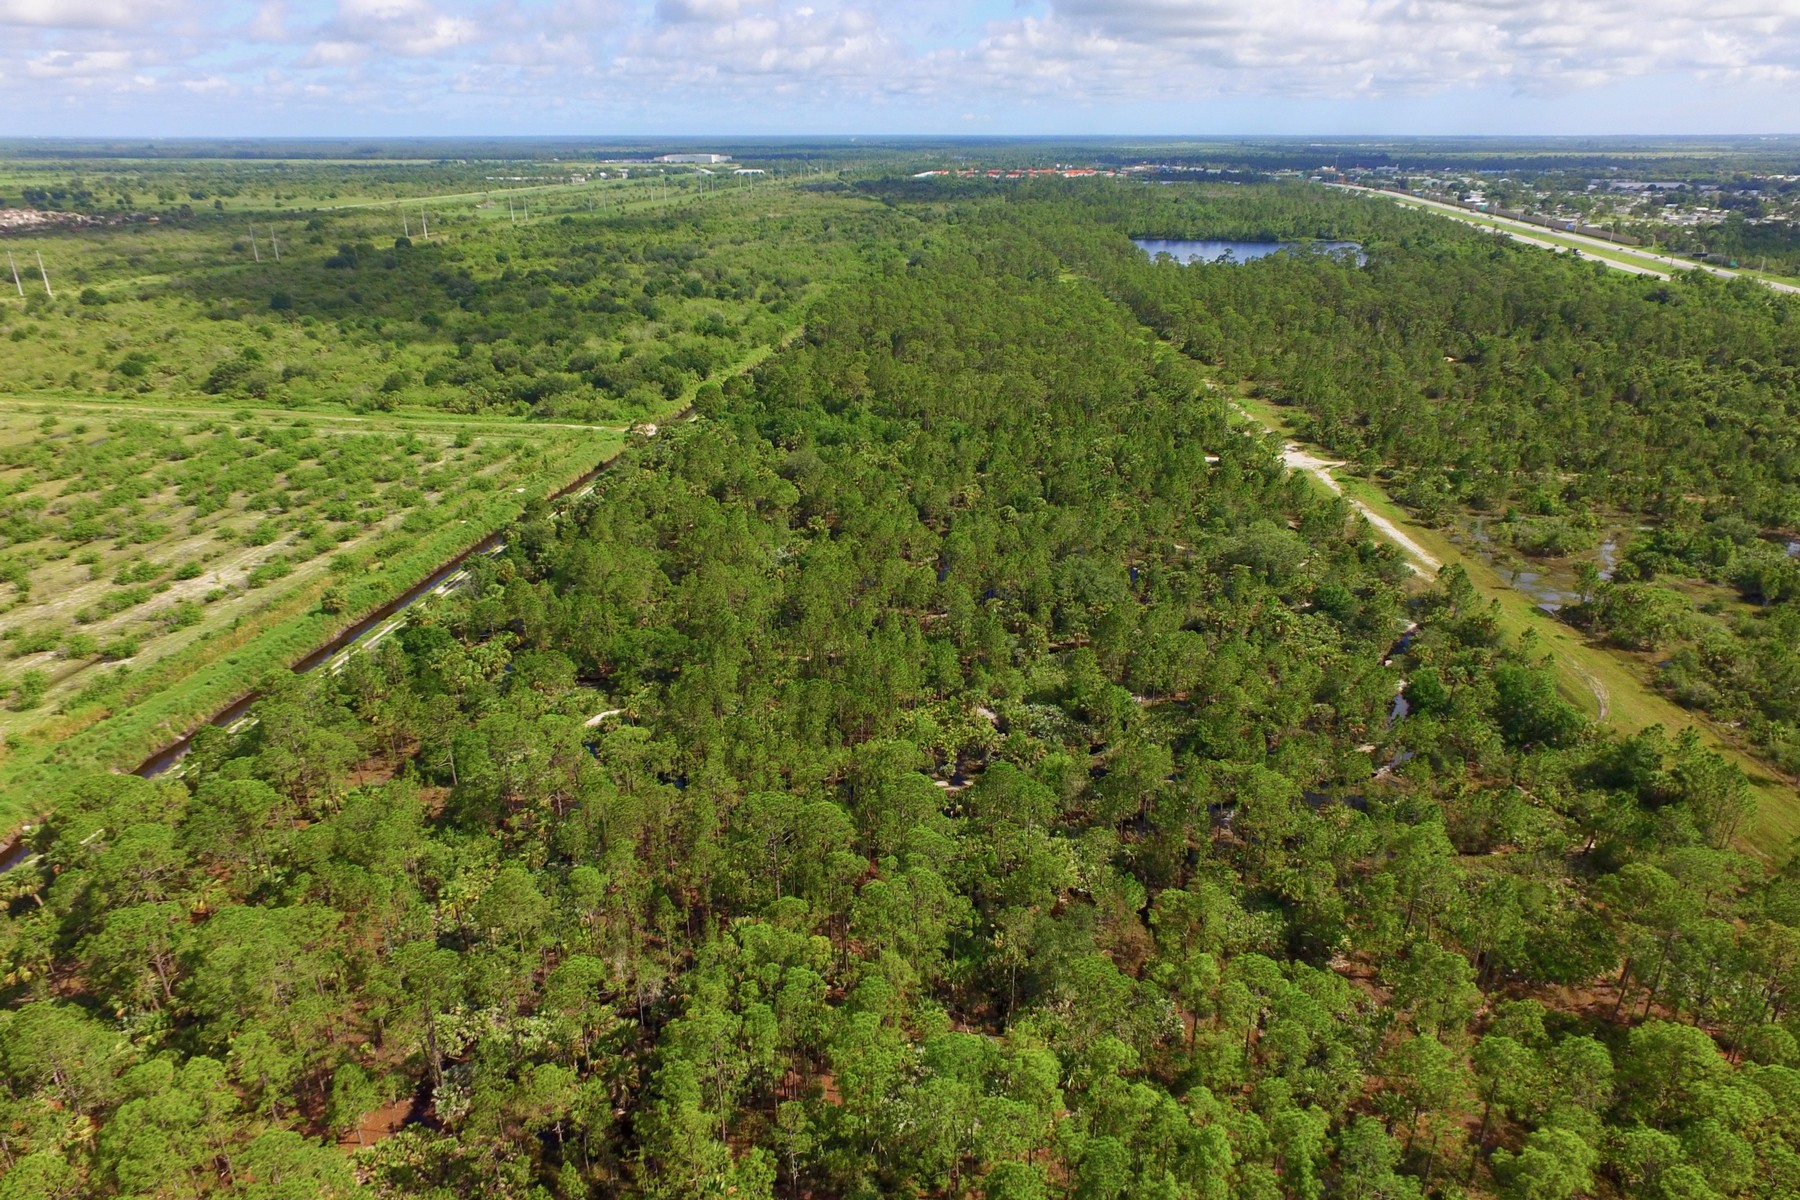 Land for Sale at Ten Acre Multi-Use Property with Endless Possibilities! 000 8th St Vero Beach, Florida 32968 United States